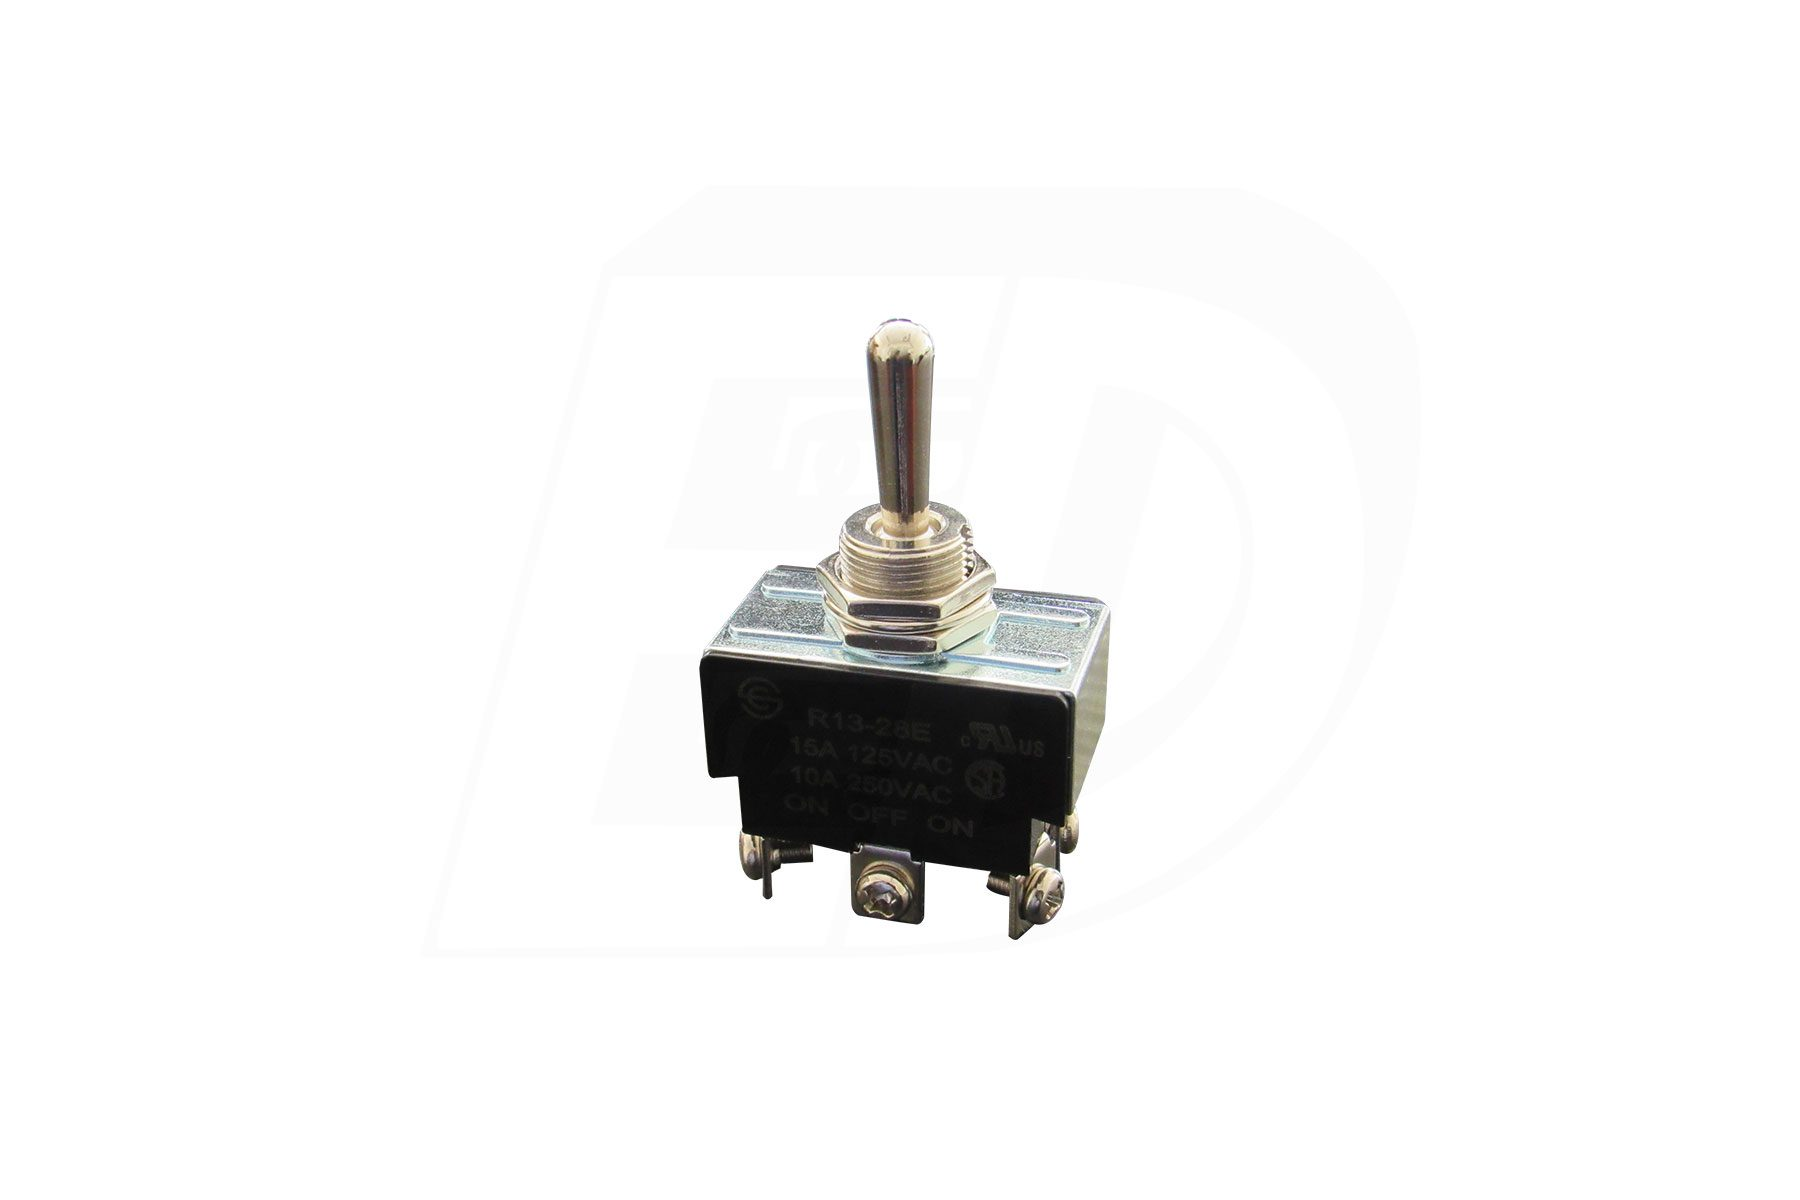 DPDT Toggle Lamp Switch